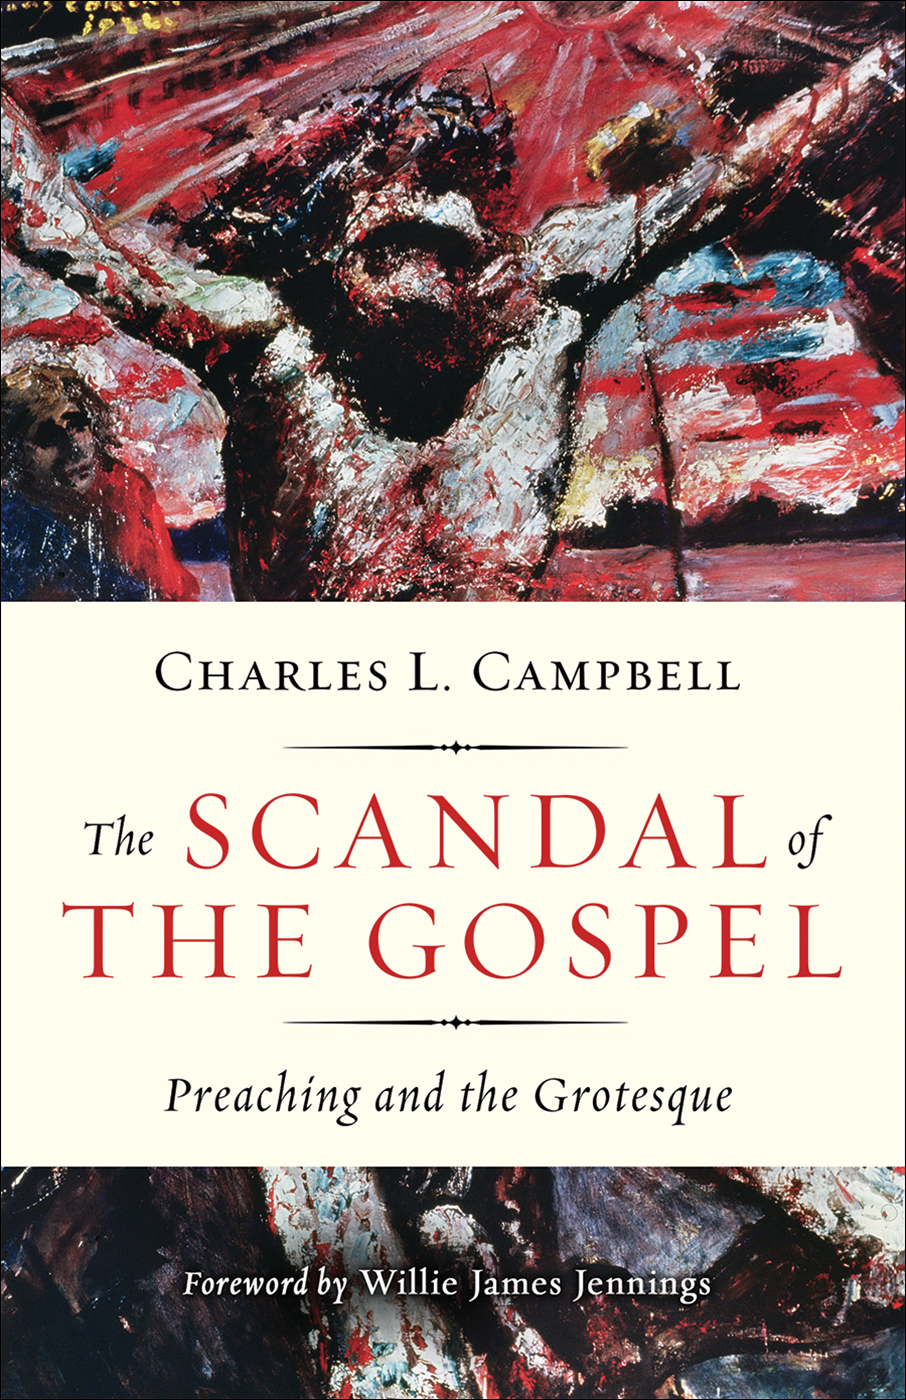 The Scandal of the Gospel